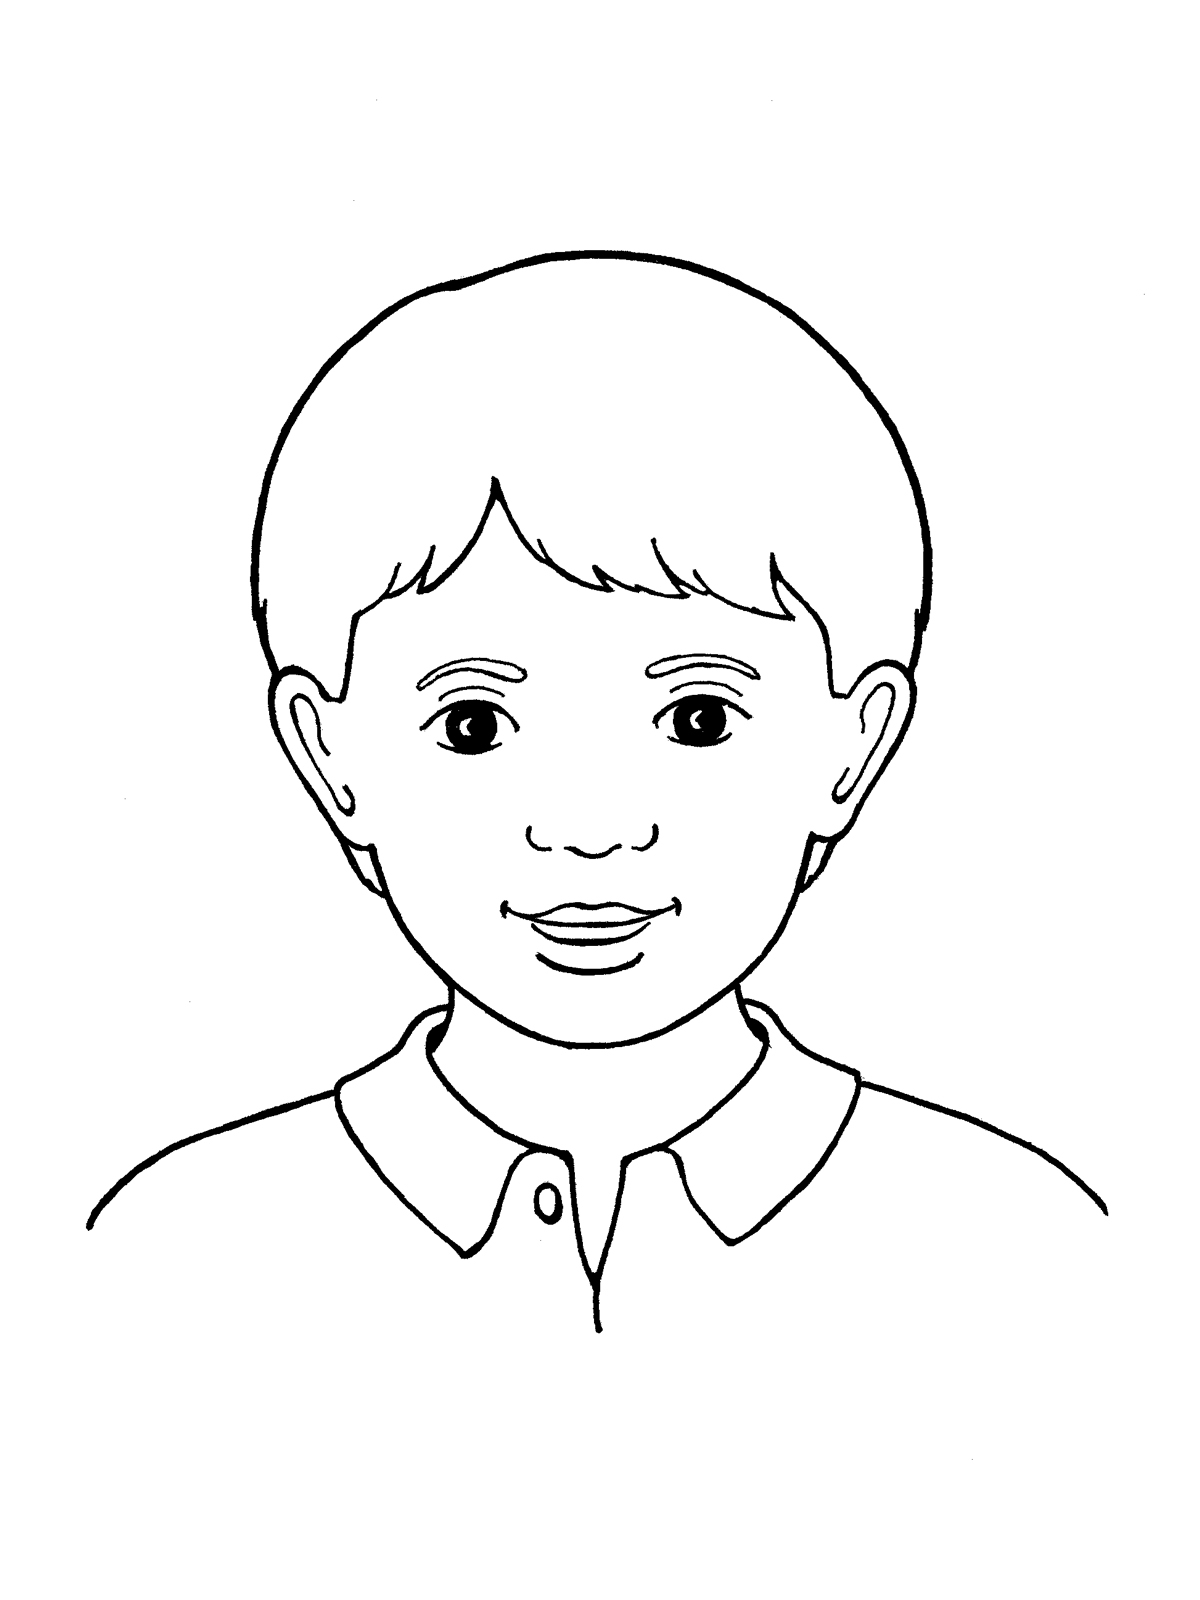 Line Drawing Of Child S Face : Primary boy